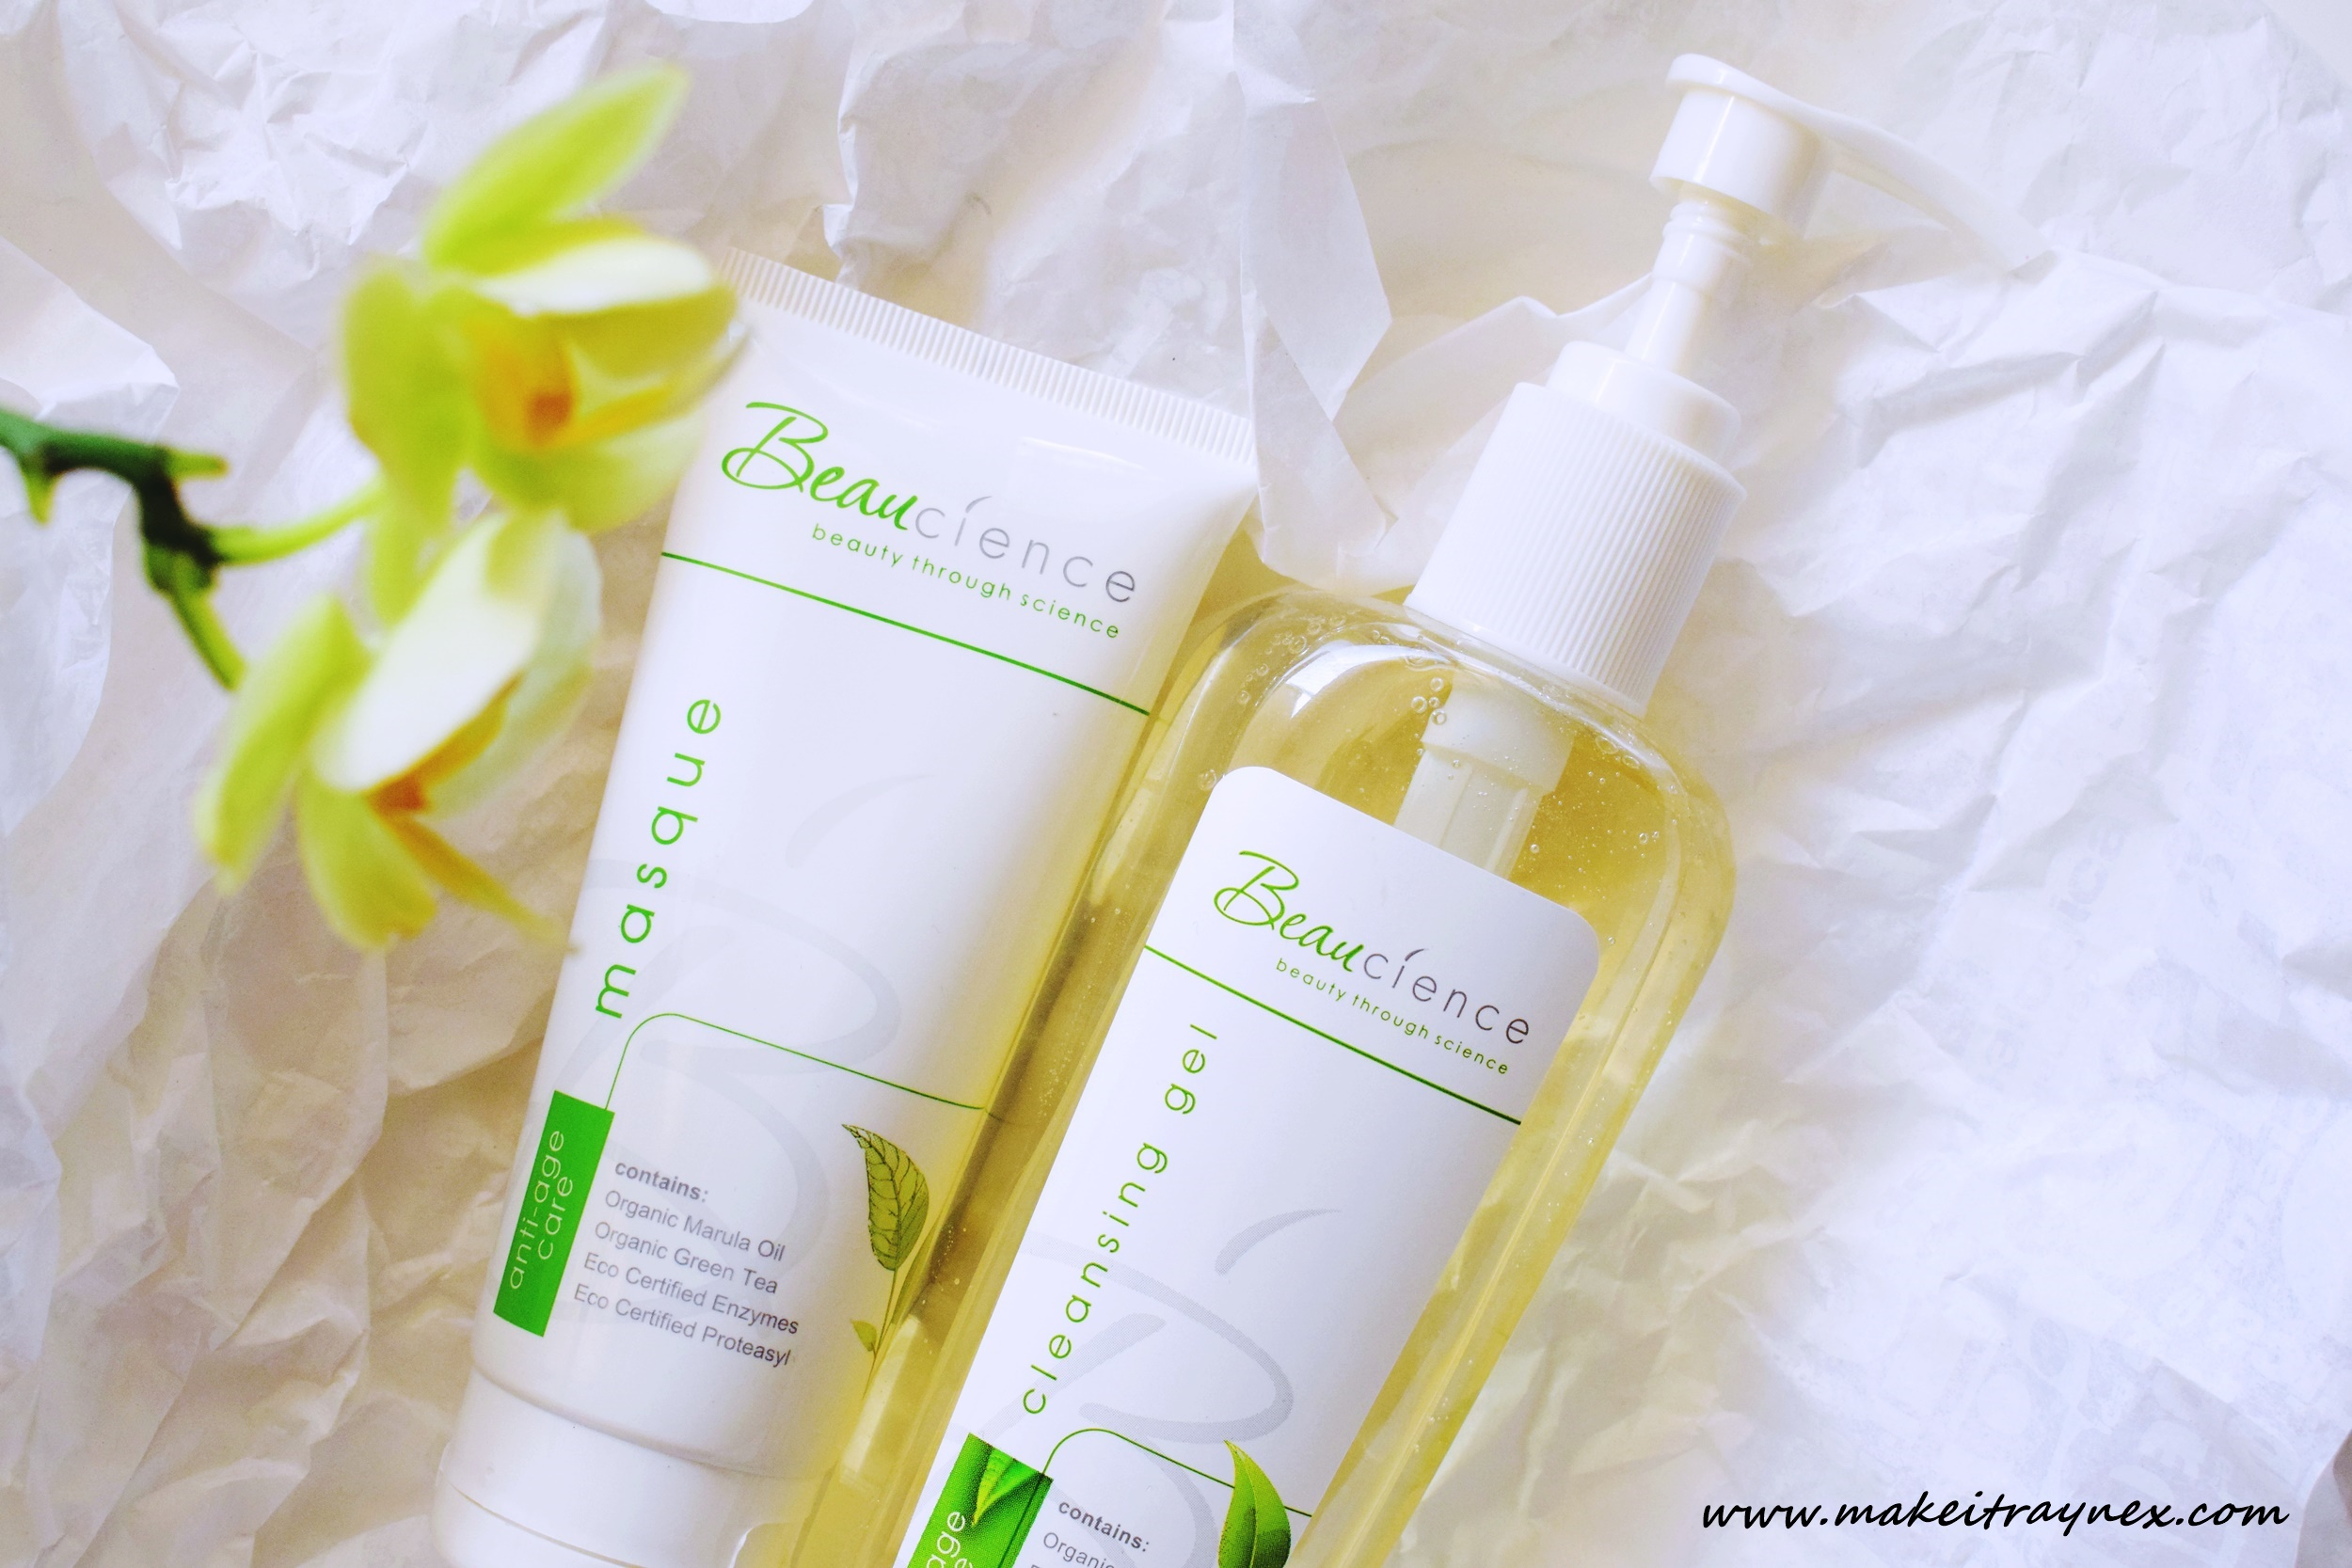 Beaucience favourites! Seriously, this cleansing gel is a winner.